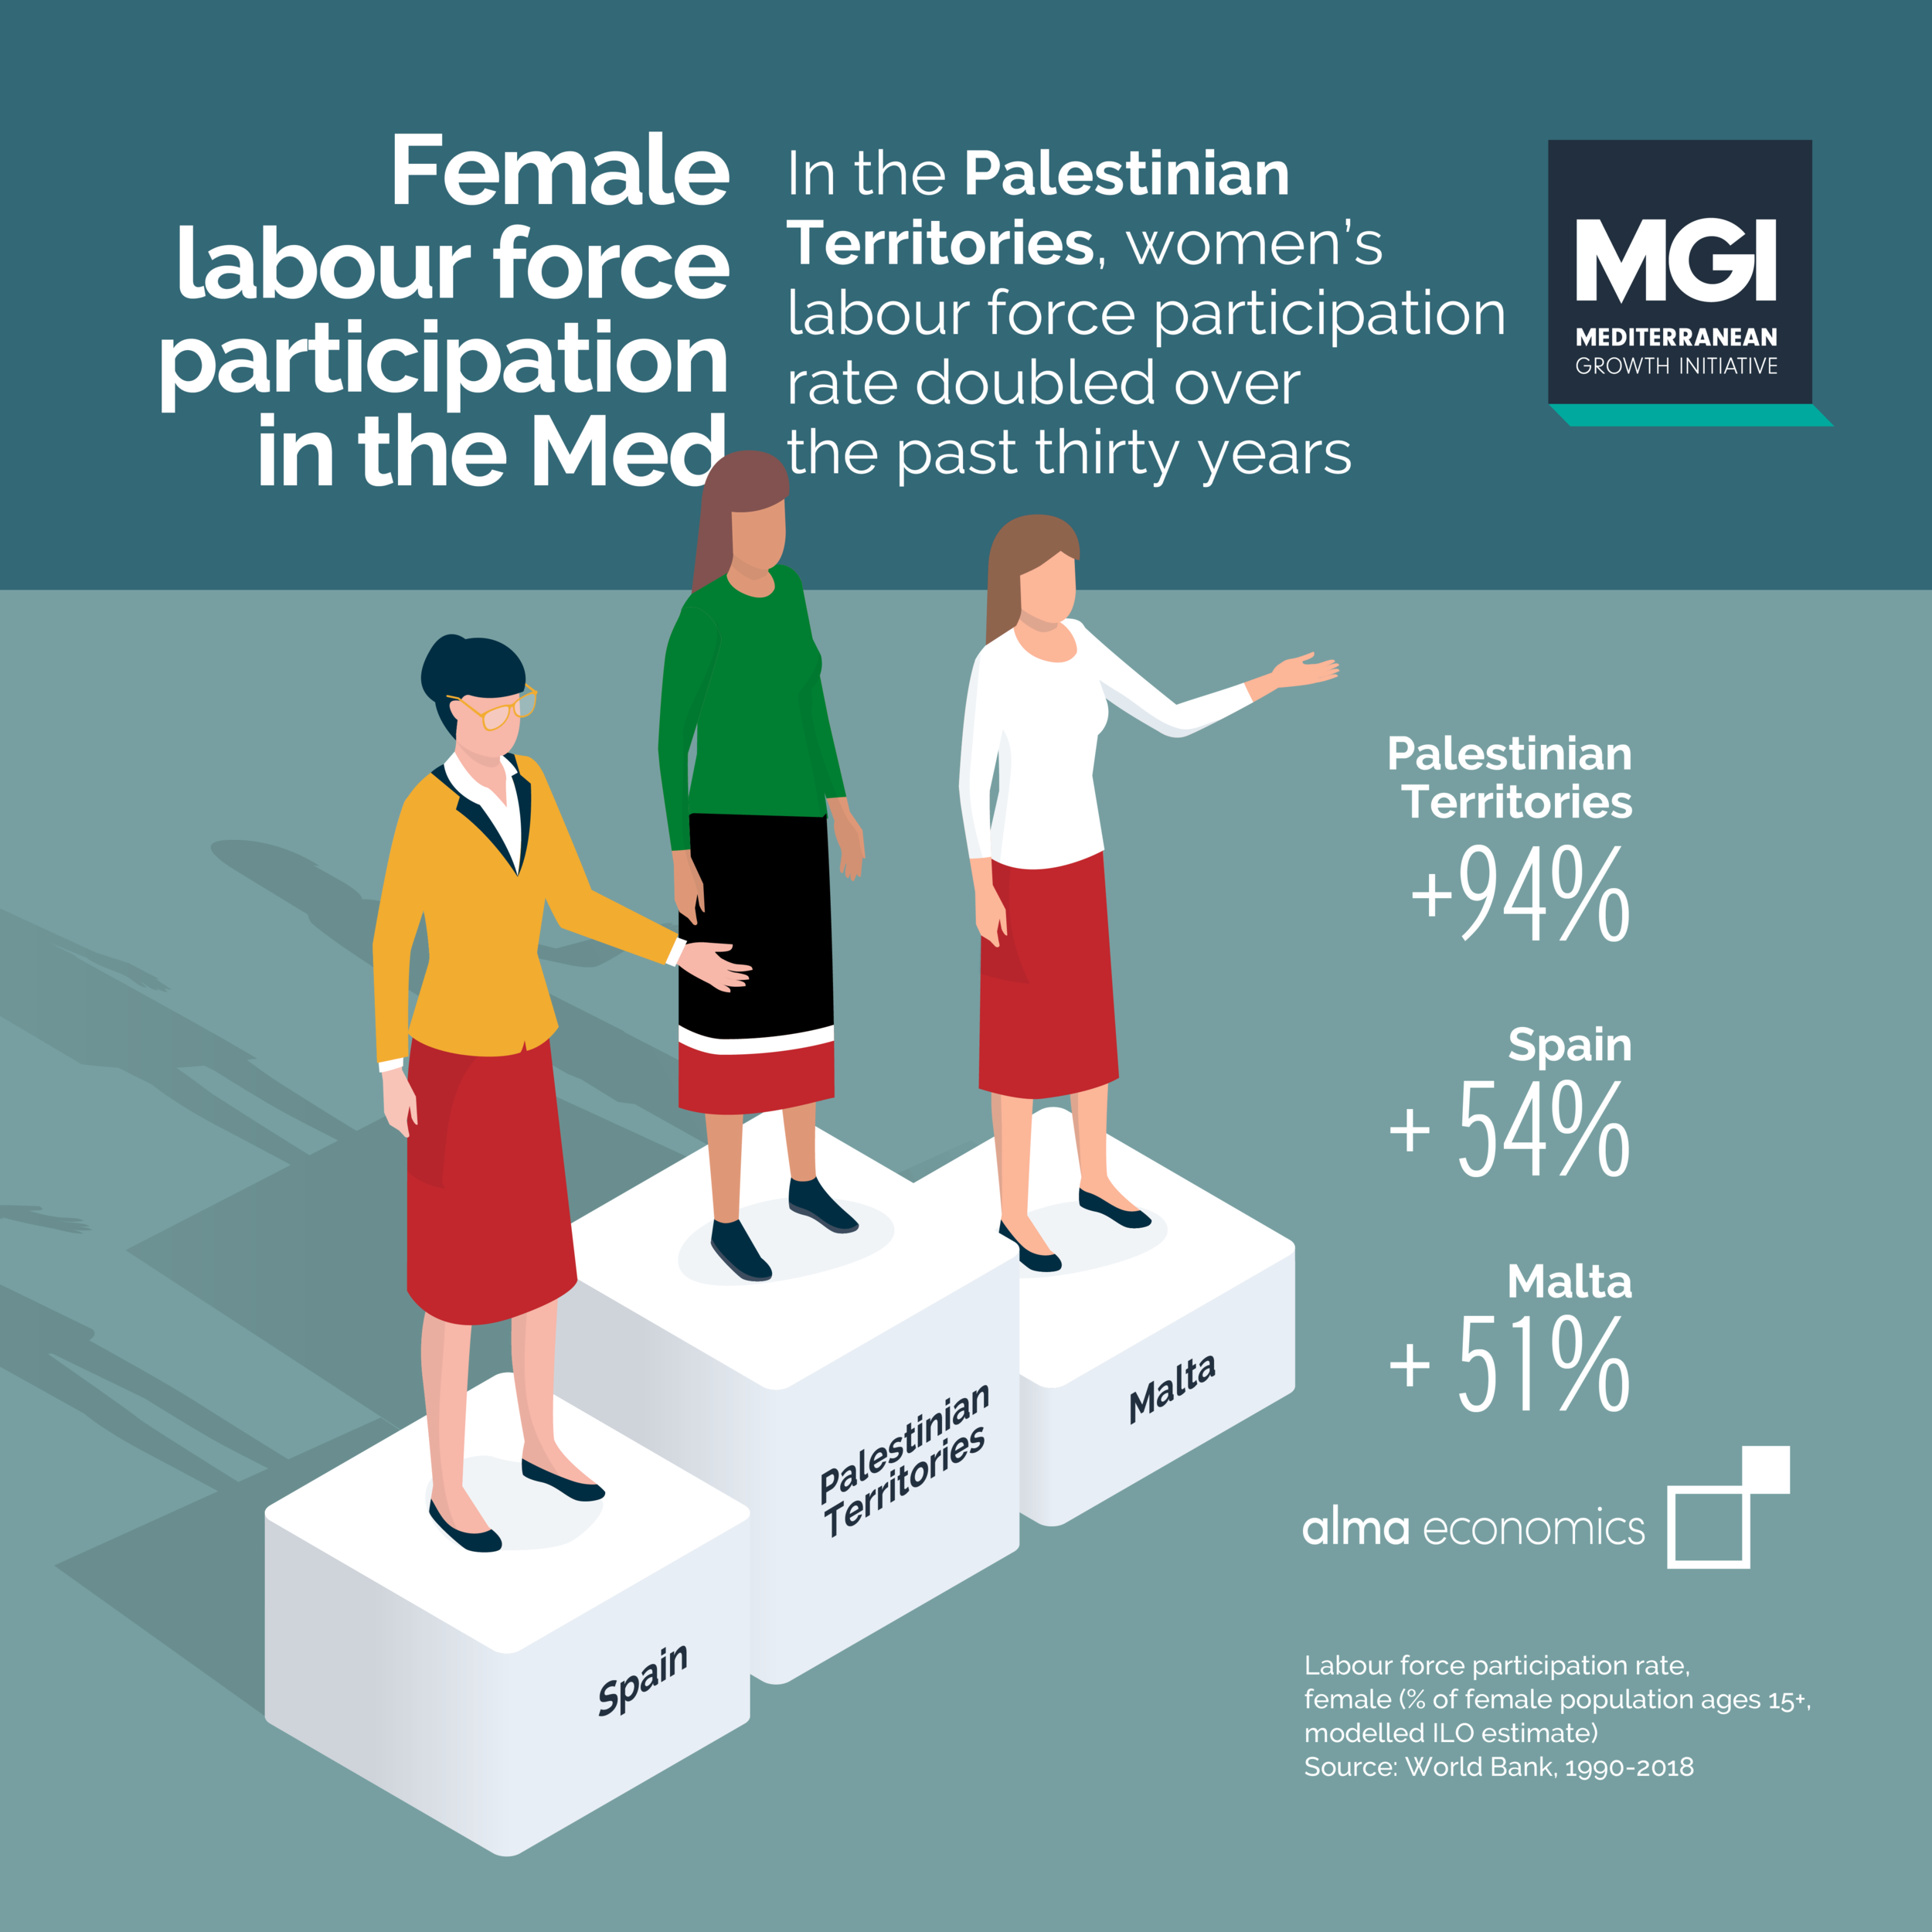 Female labour force participation in the Med - Labour force participation among women has recorded an extraordinary increase in the Palestinian Territories, the highest in the Mediterranean region